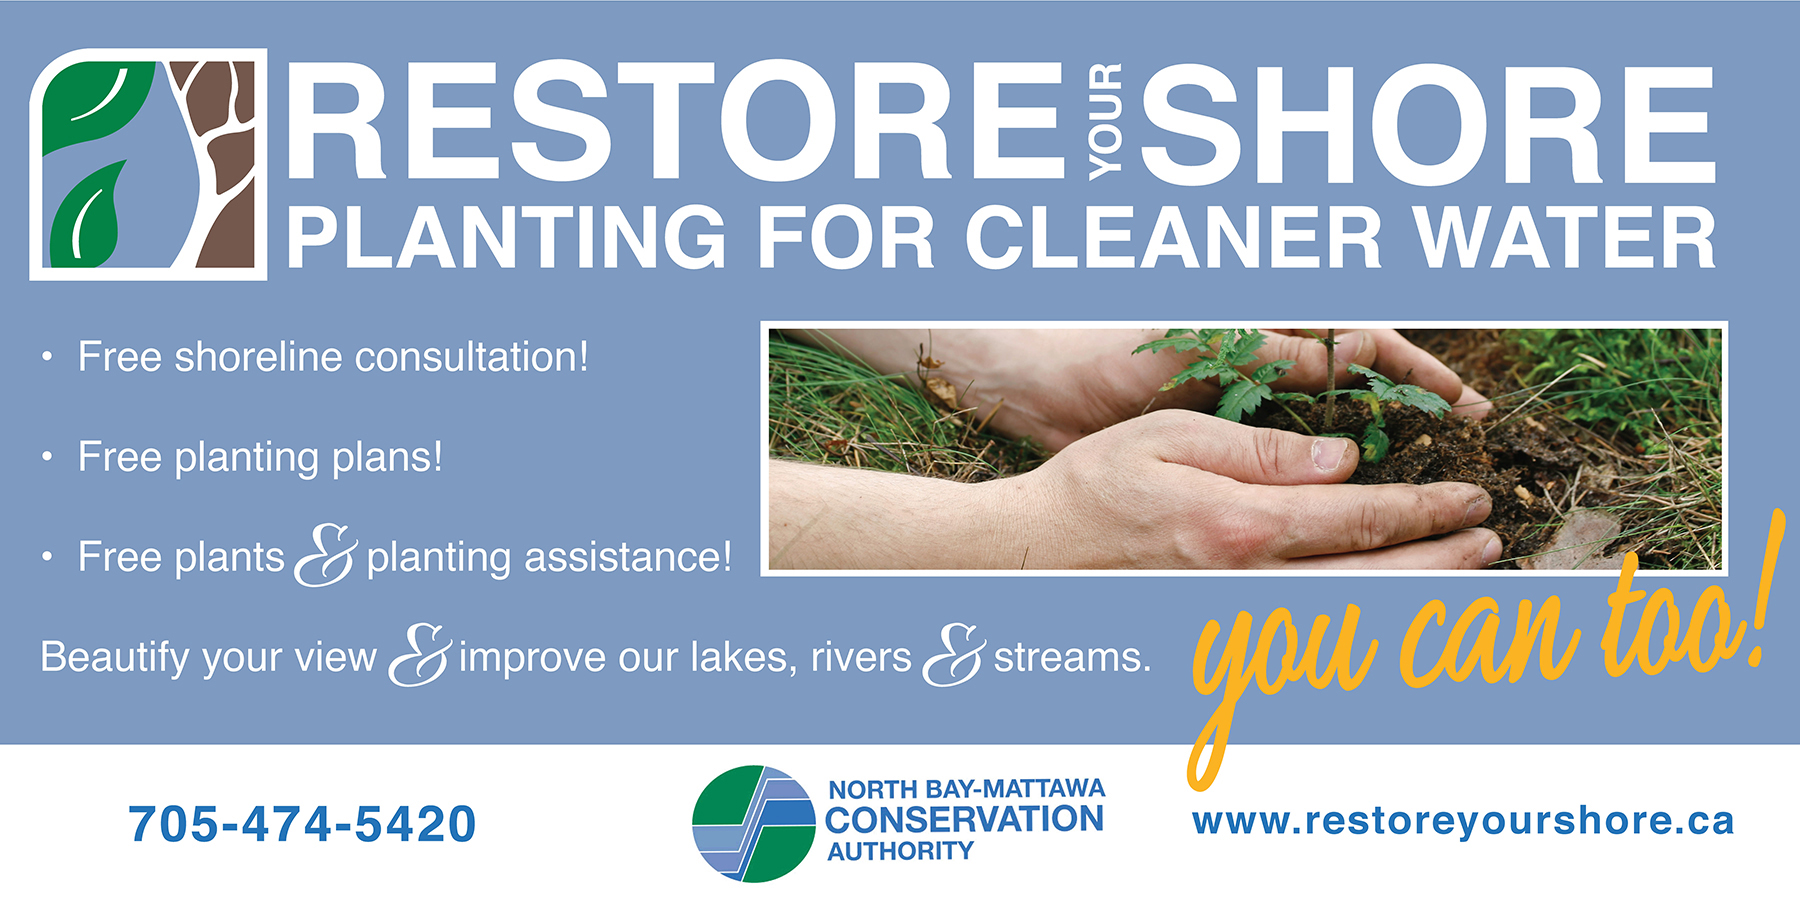 Restore Your Shore Poster